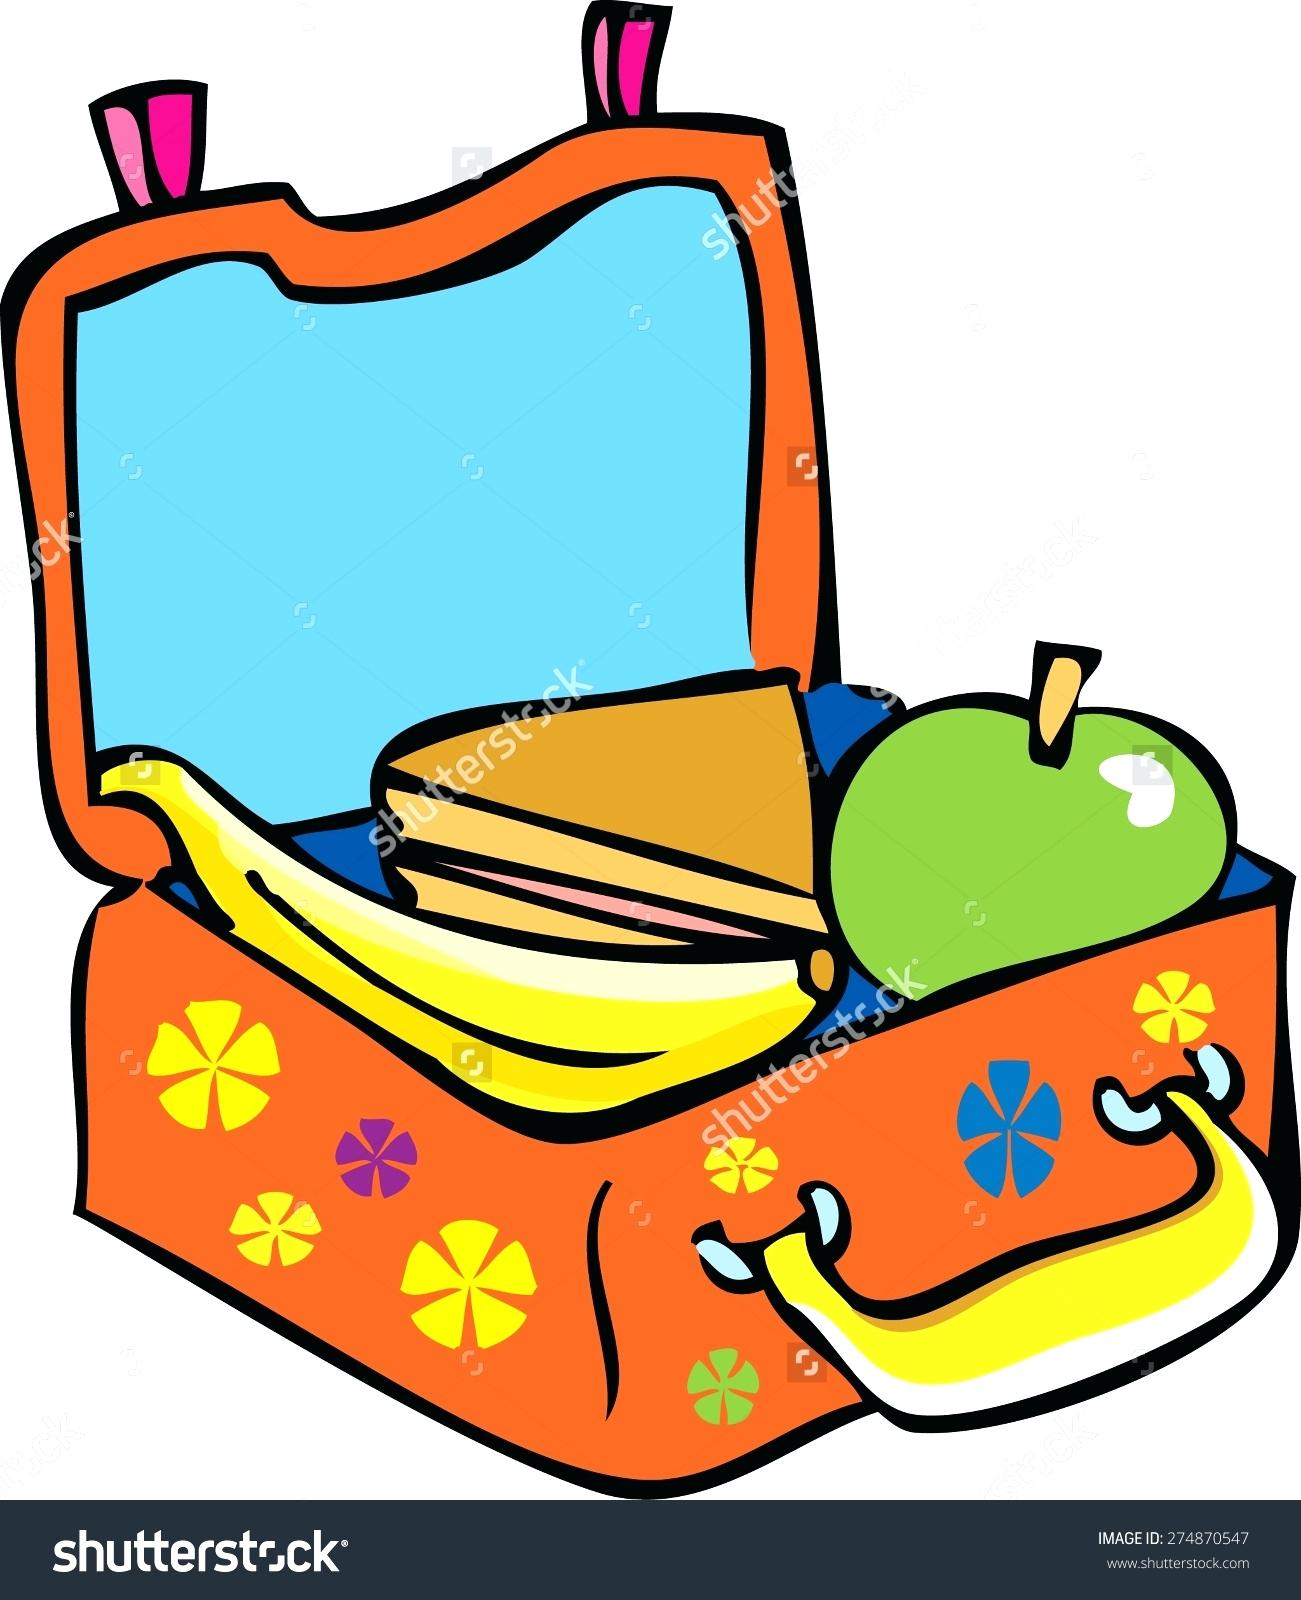 Clipart Packed Lunch & Free Clip Art Images #16387.